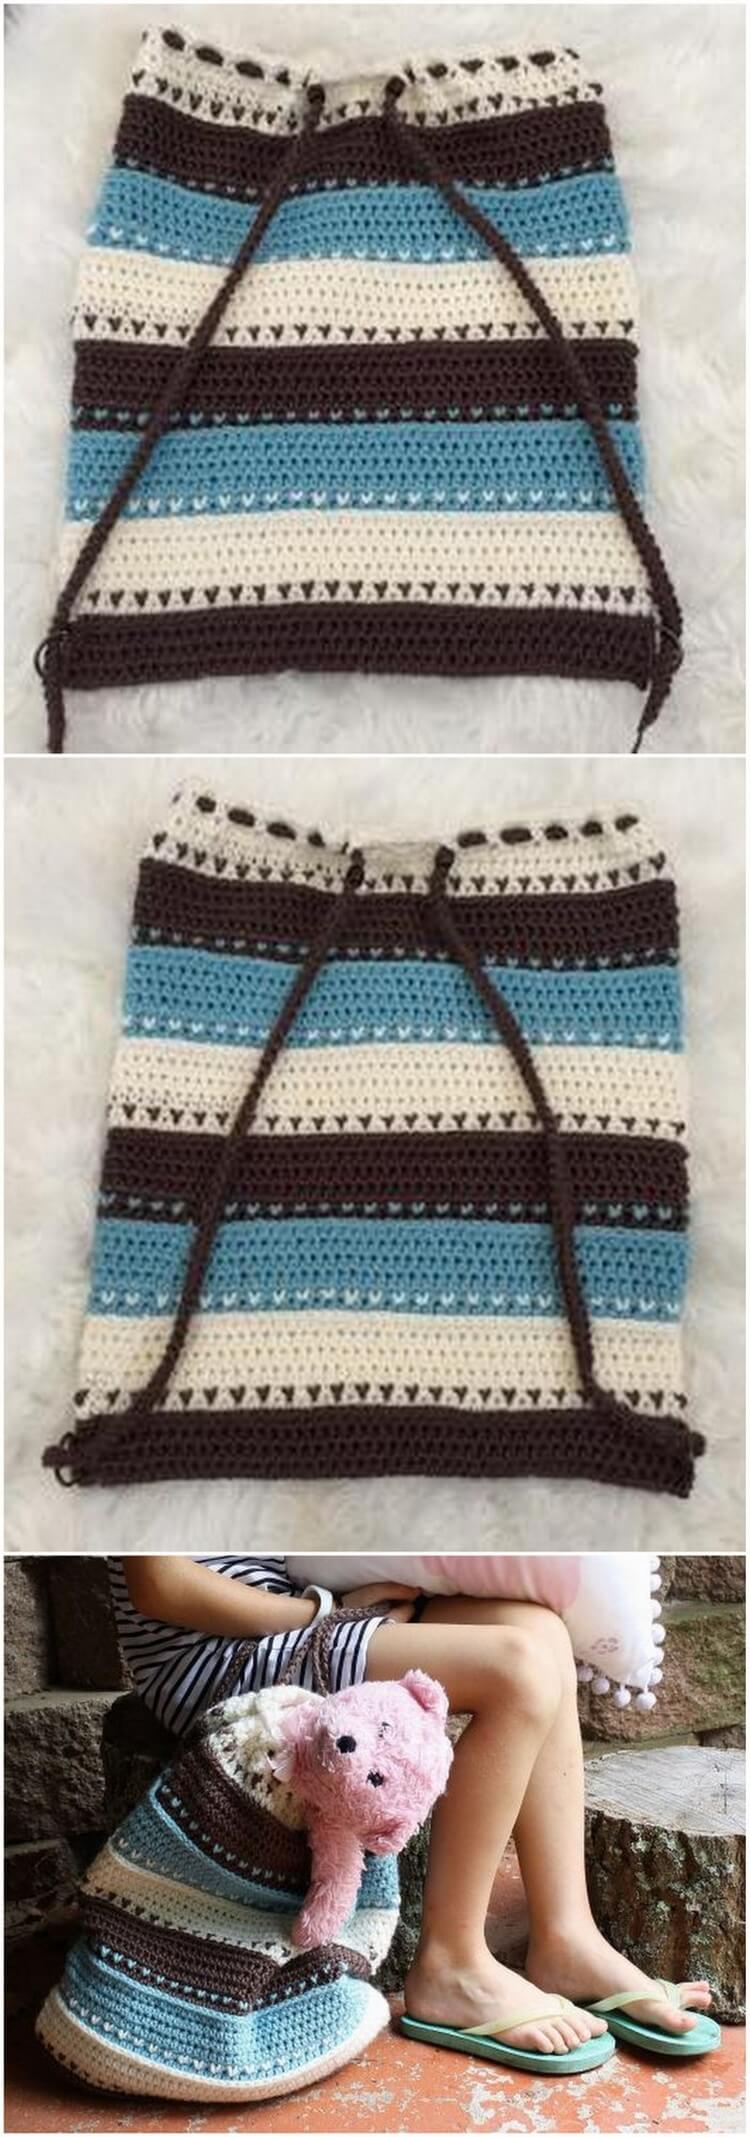 Crochet Backpack Pattern (35)